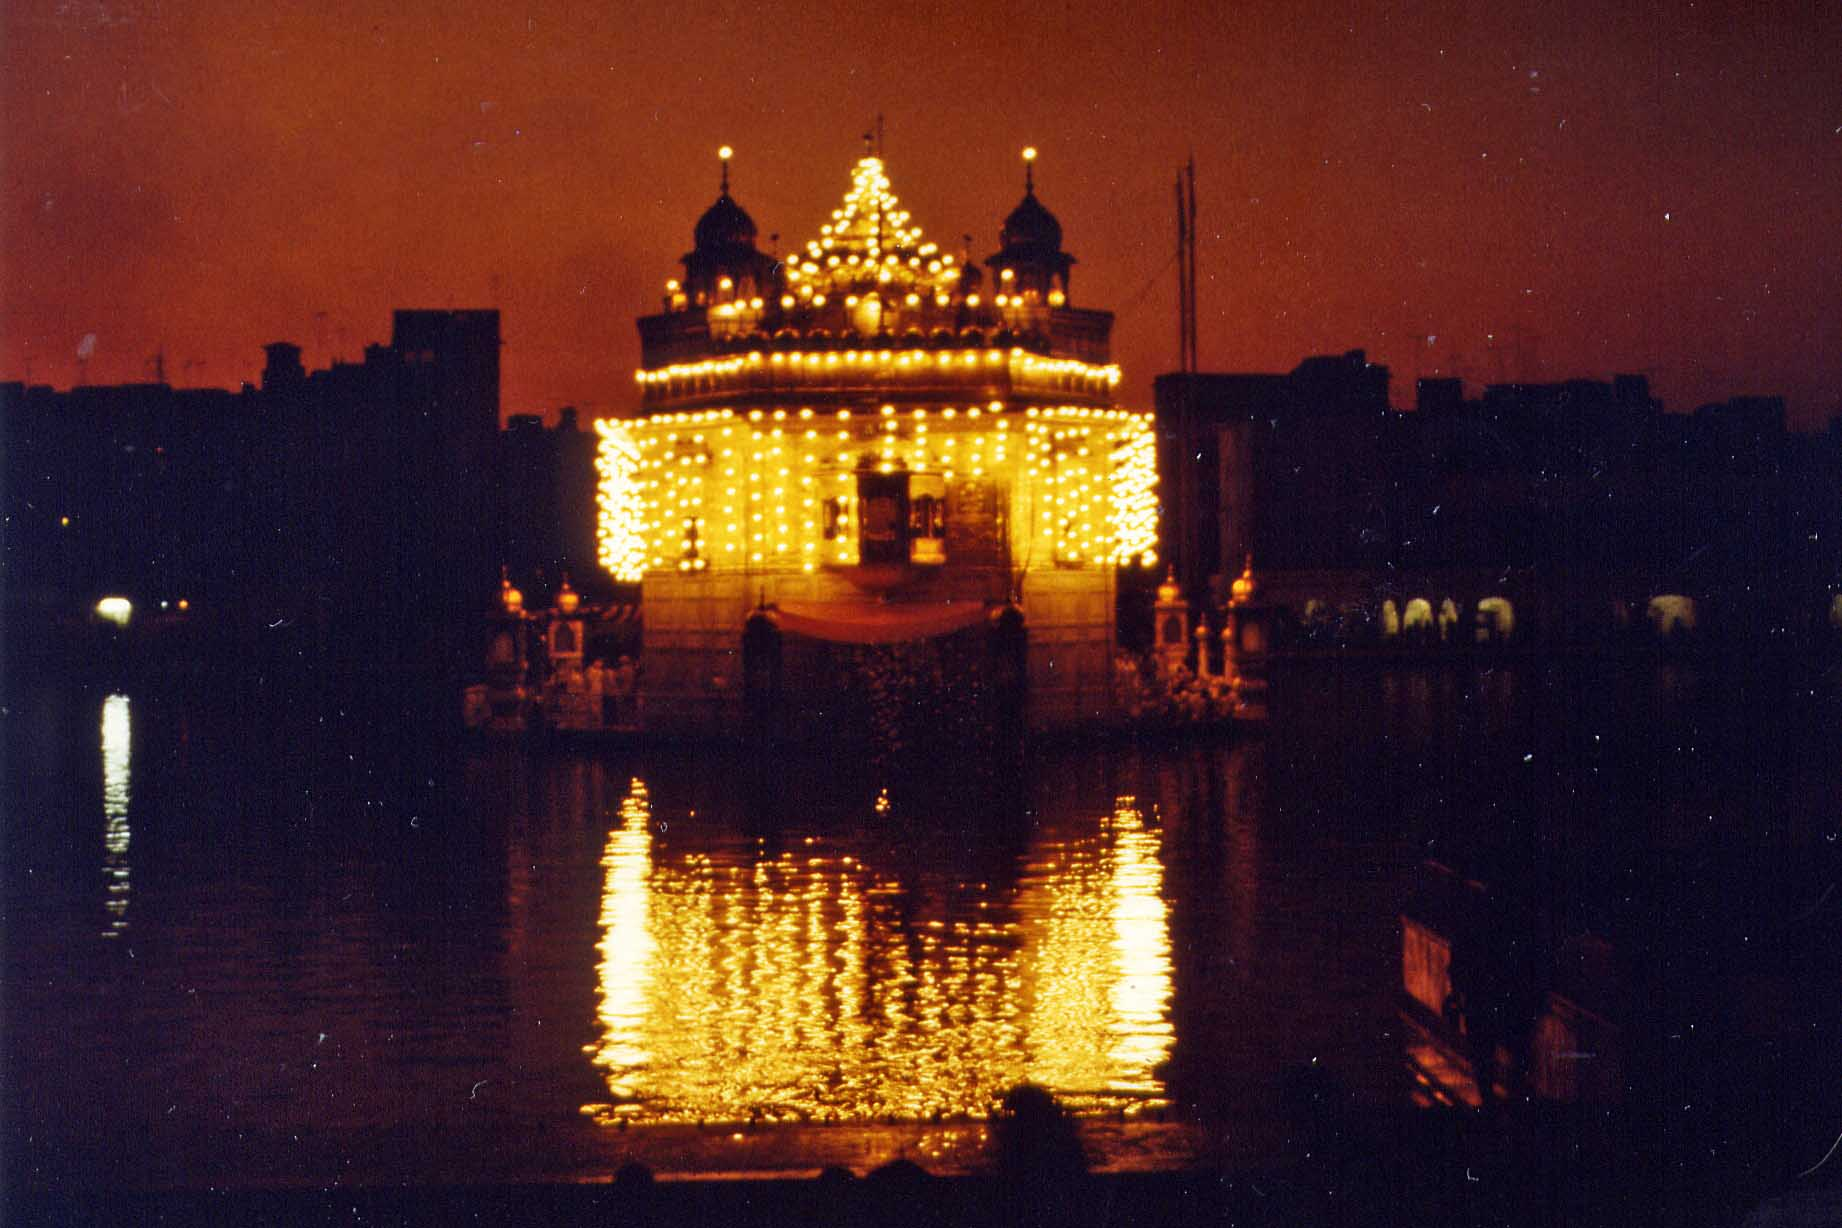 Golden Temple in Amritsar by night